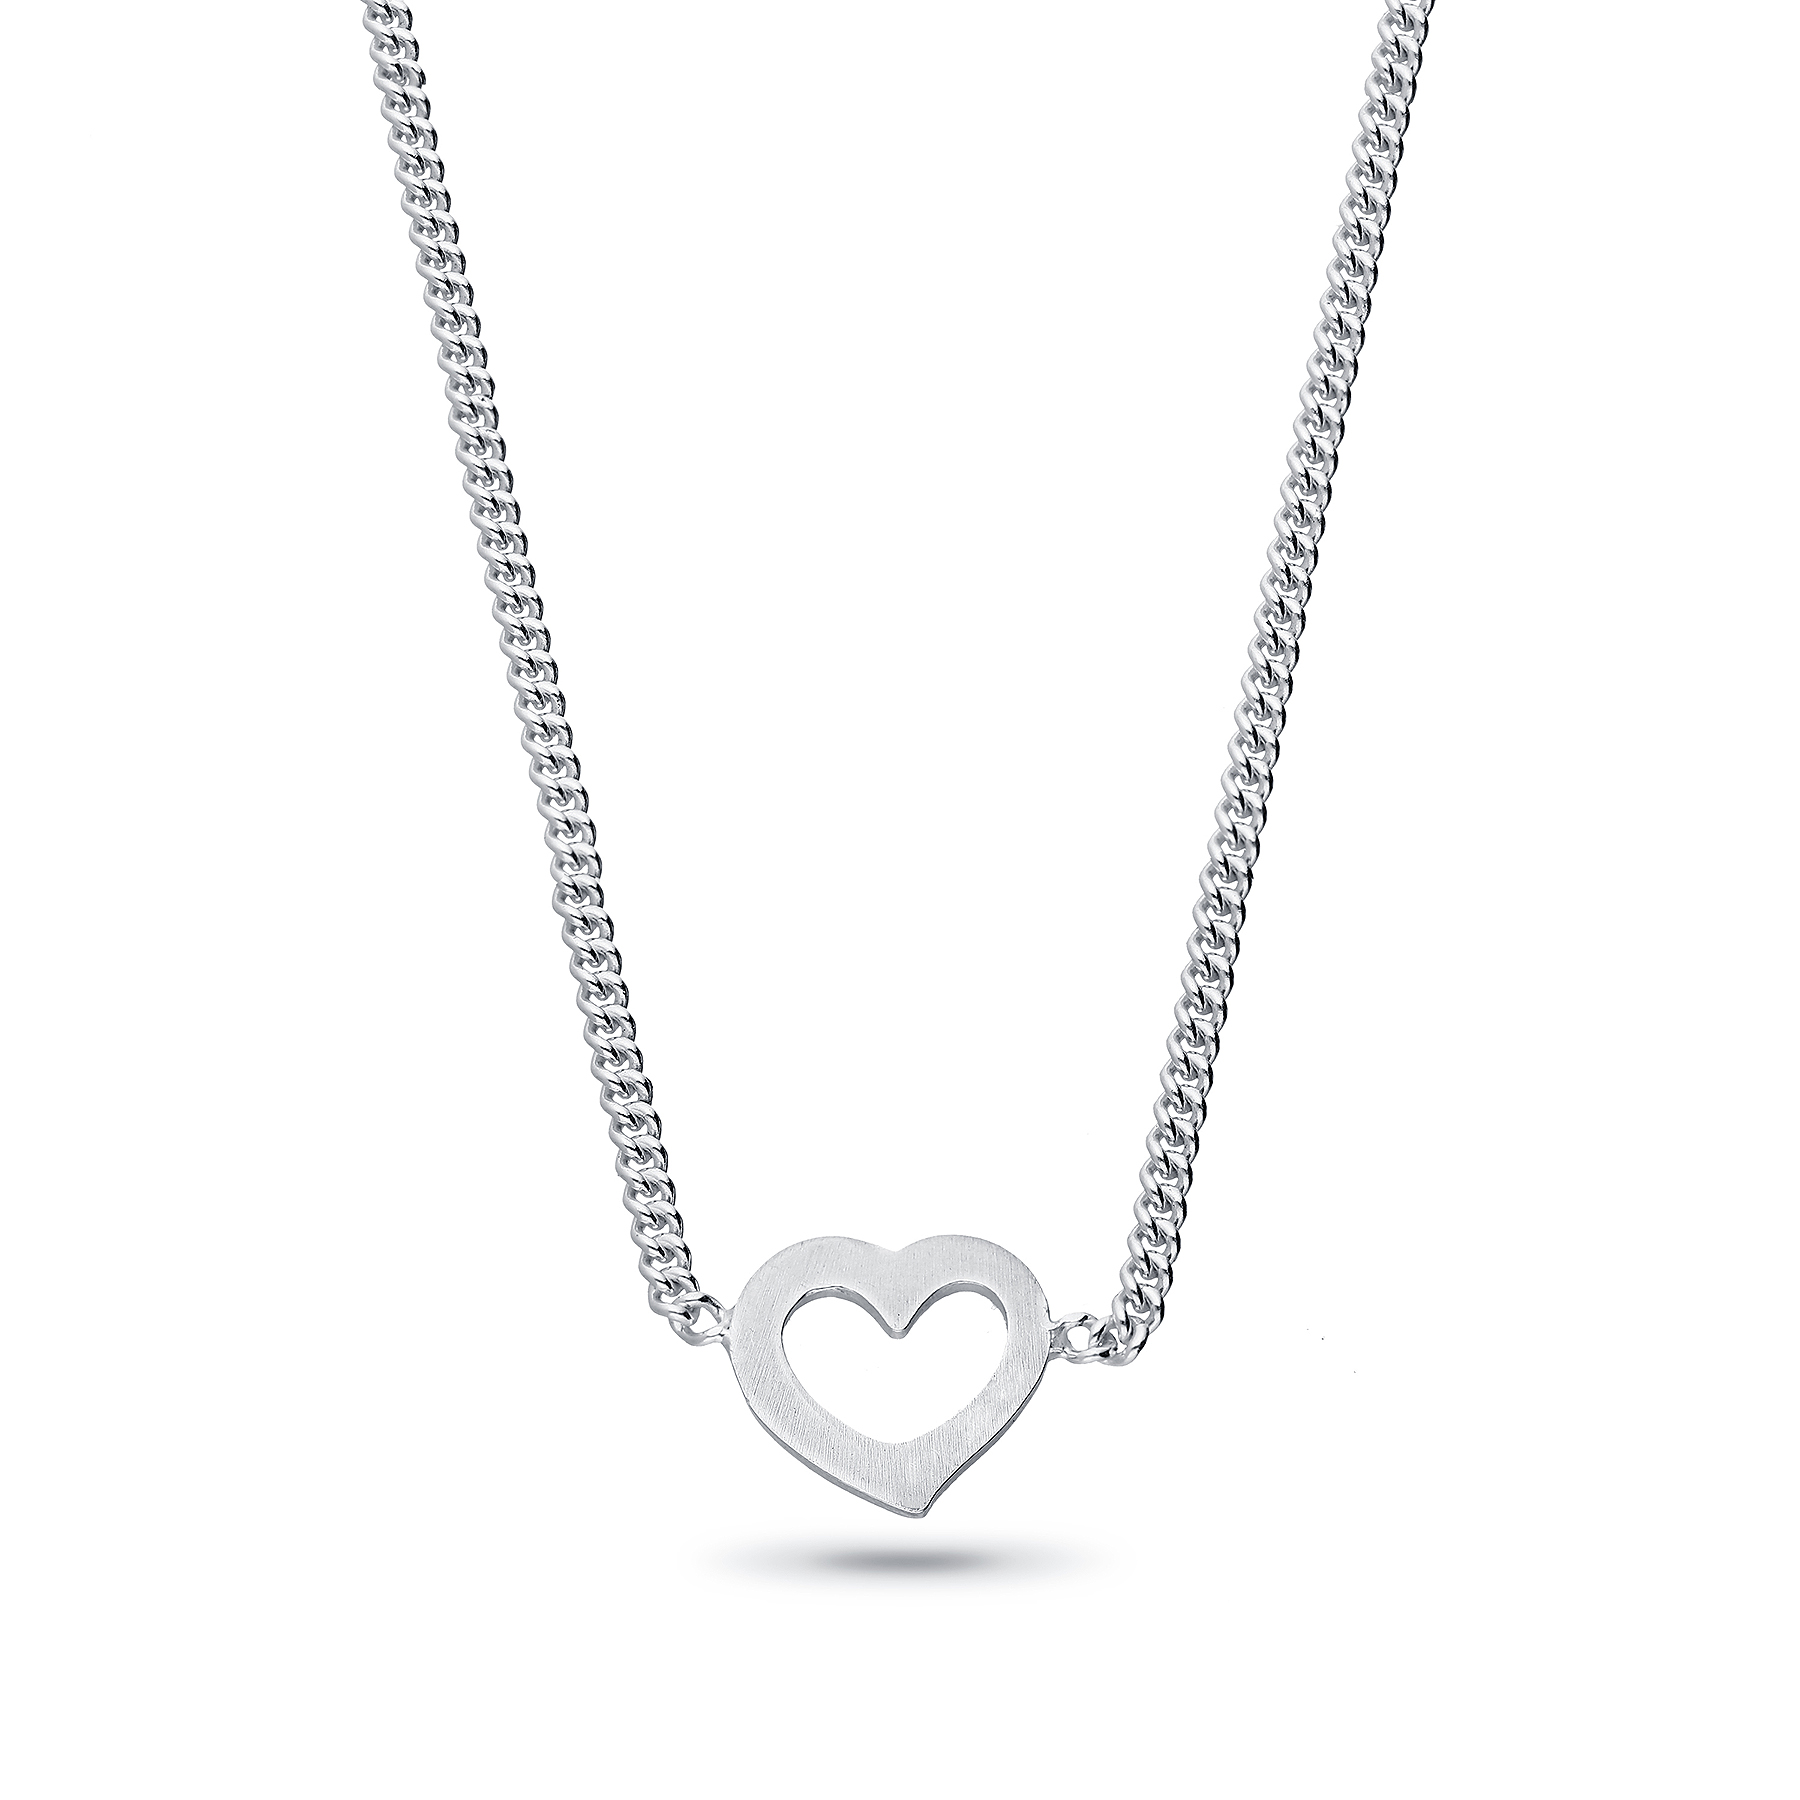 706-28484 - 925 Sterling Silver Choker Featuring Heart